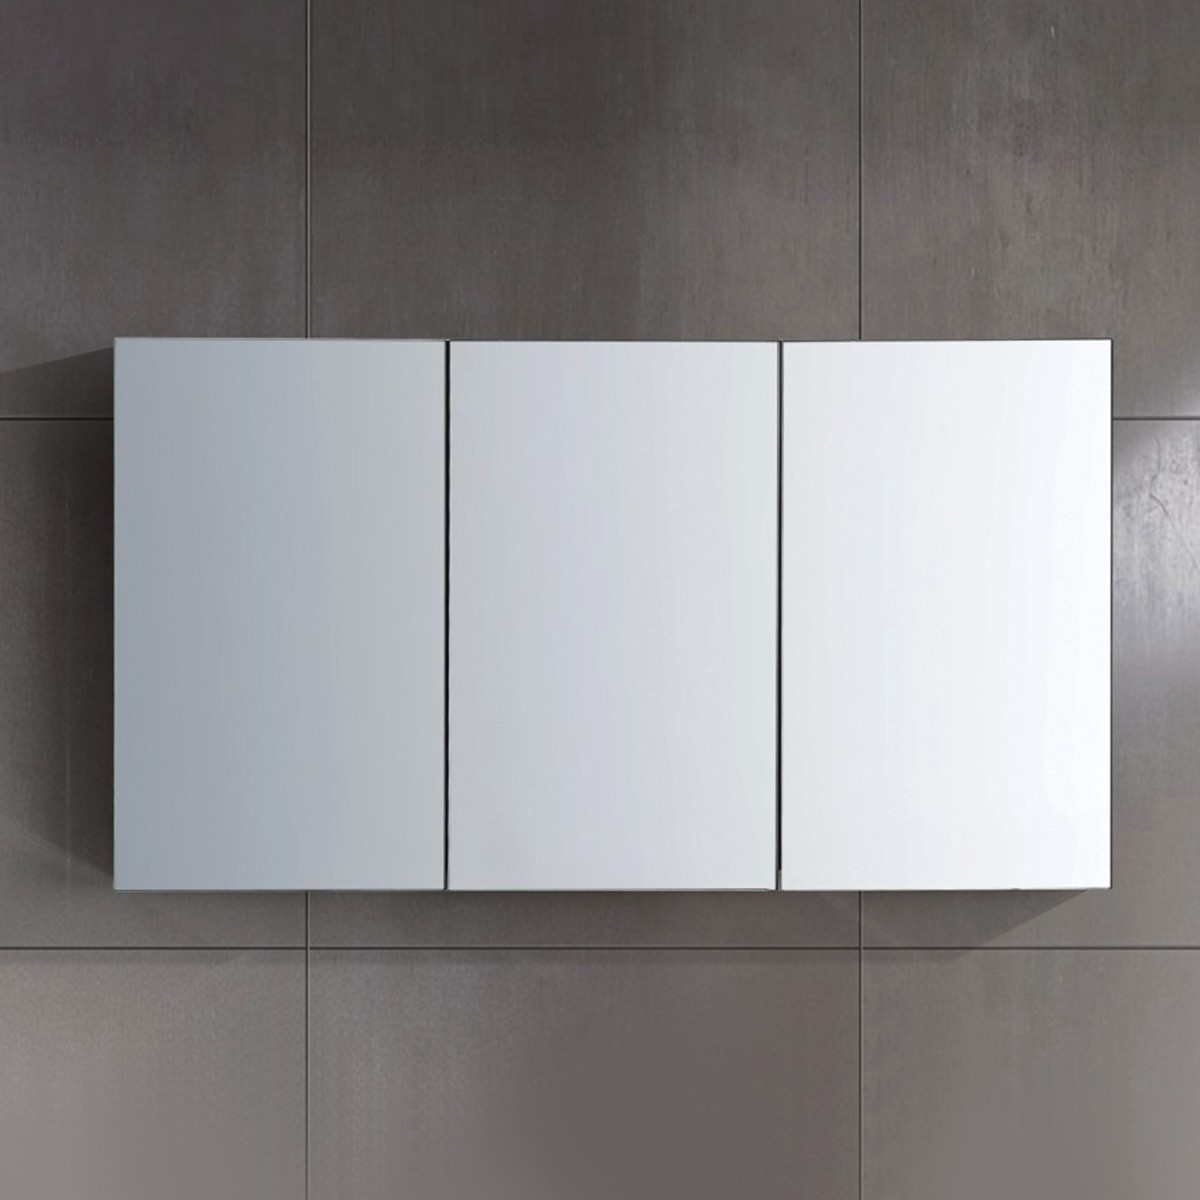 48 x 26 In. Mirror Cabinet with 3 Mirror Doors (JD054-M)